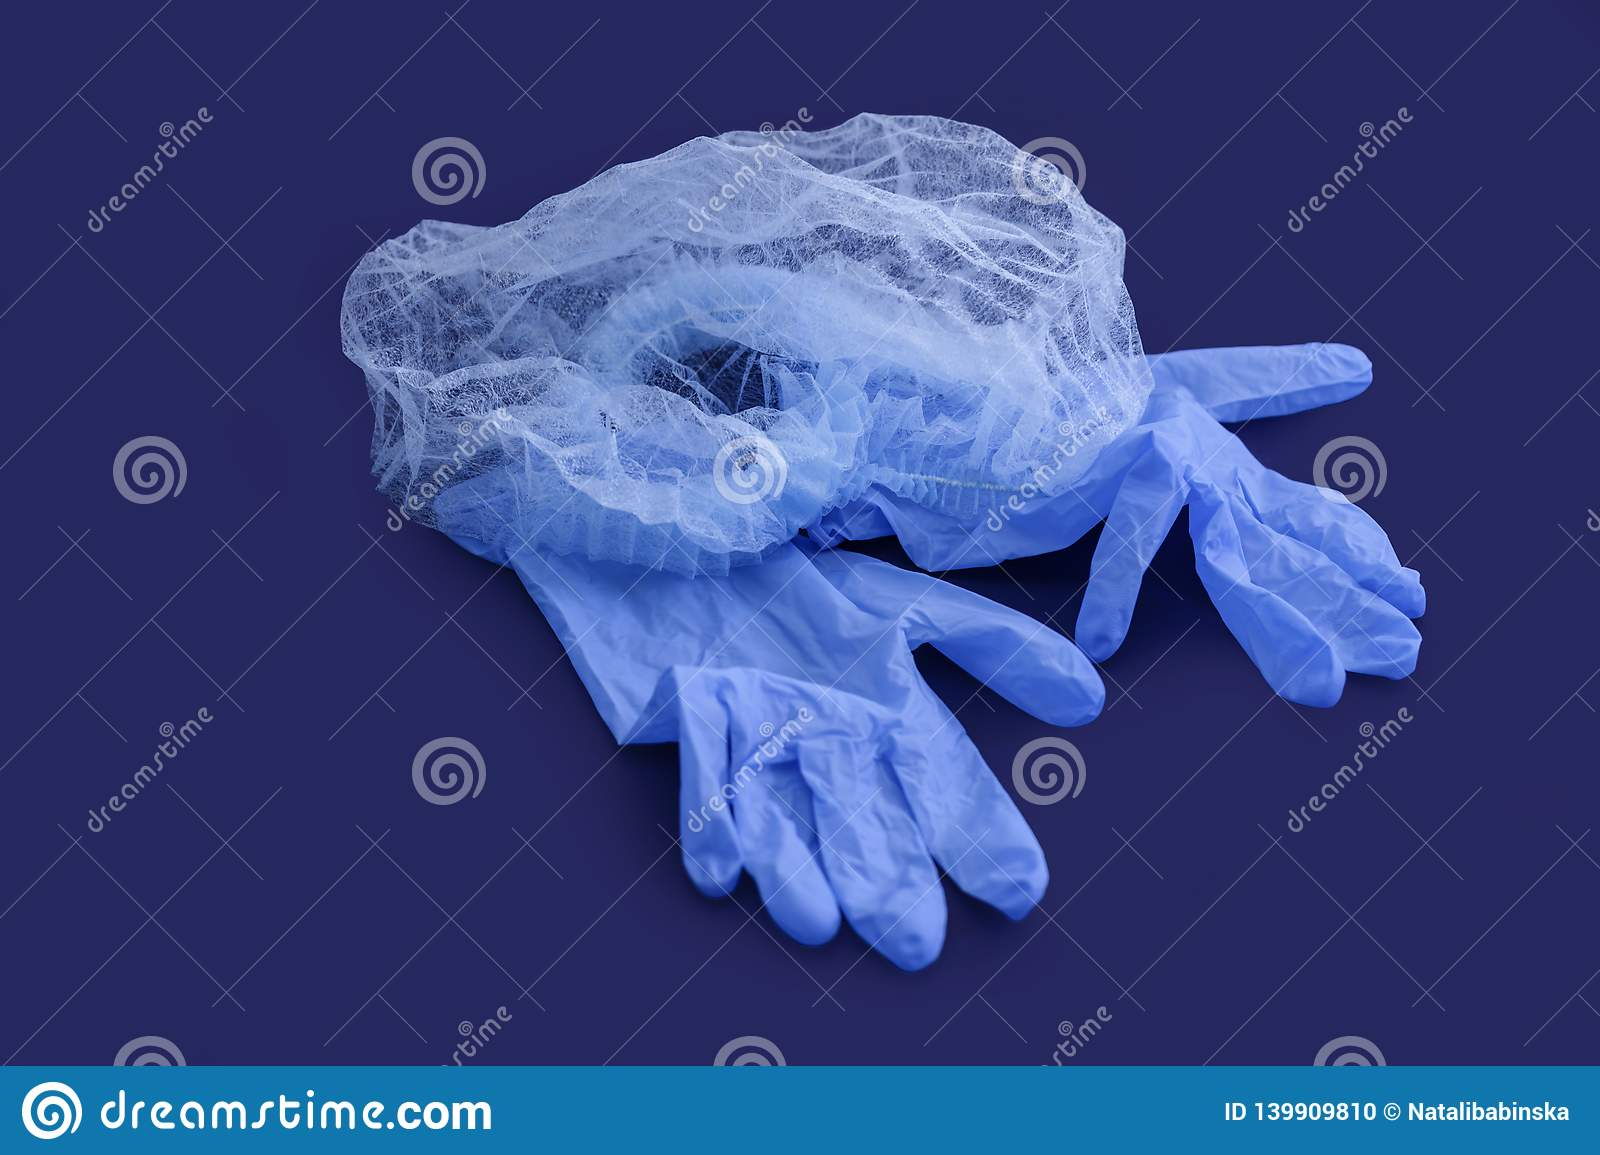 Sterile aseptic surgical glove blue background cap hat top view still life